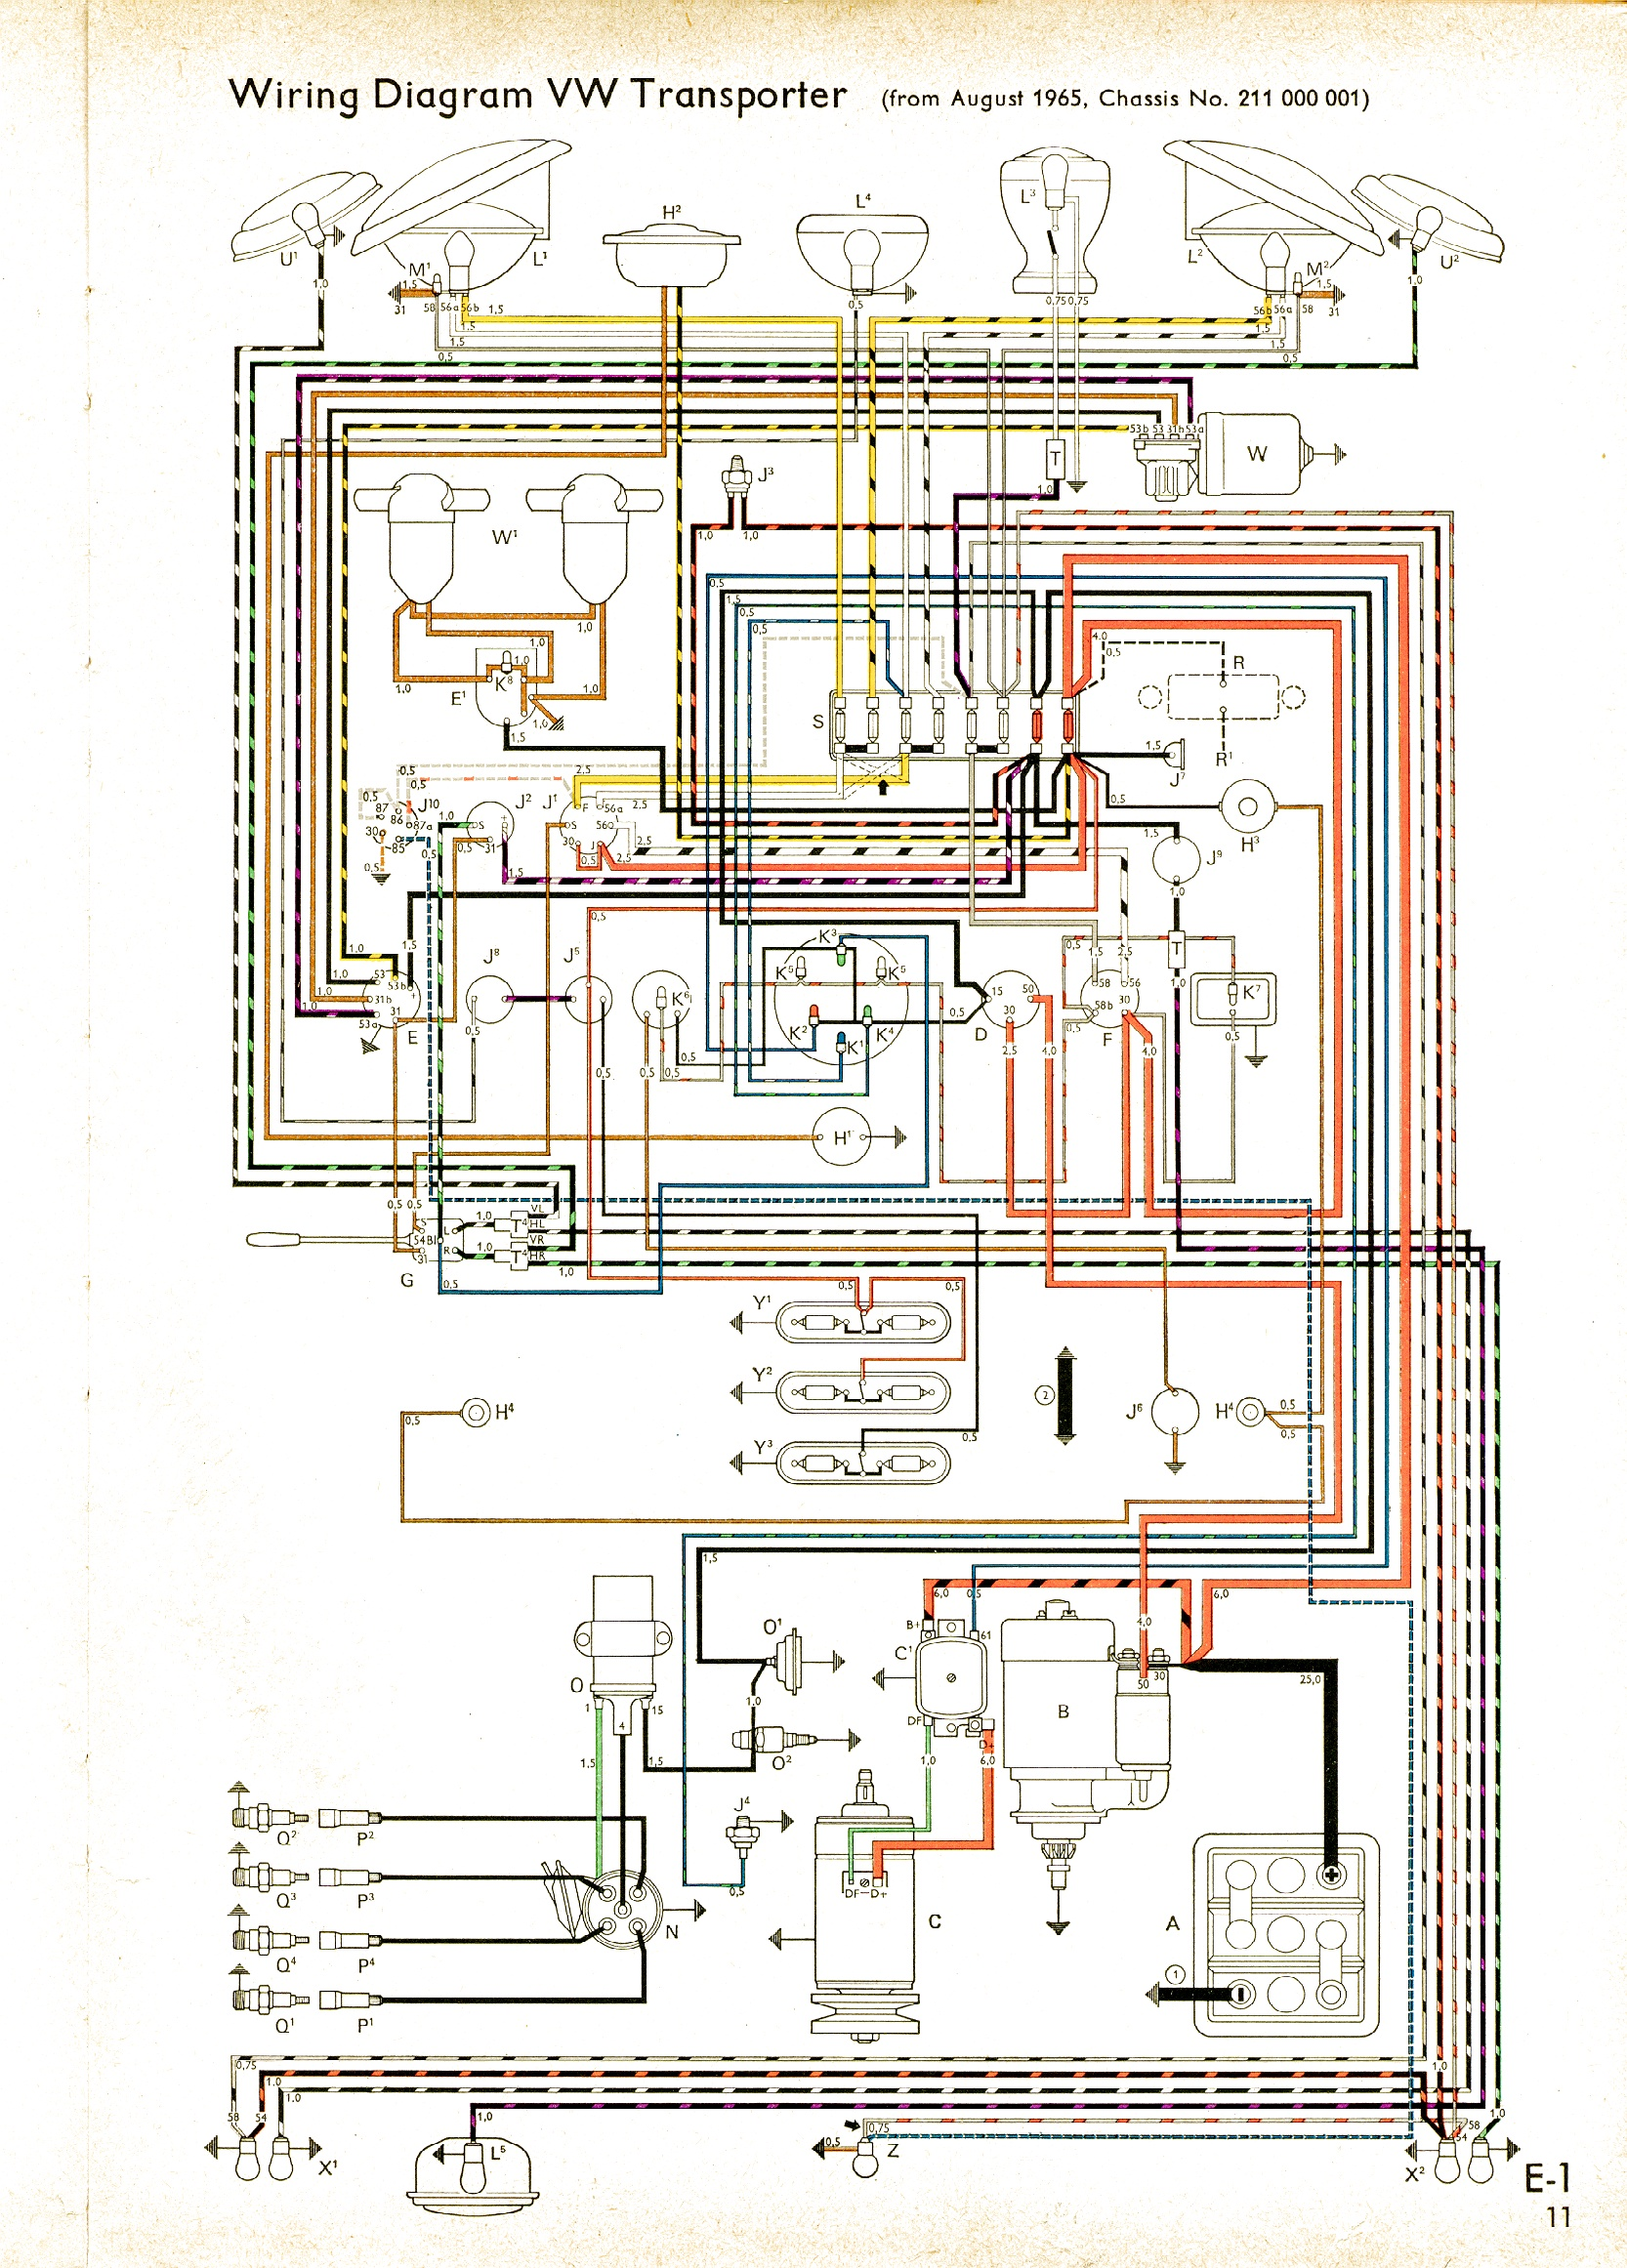 1967 vw beetle wiring diagram RIDAwNe 1967 vw bug wiring diagram on 1967 download wirning diagrams 1970 vw bug wiring diagram at arjmand.co